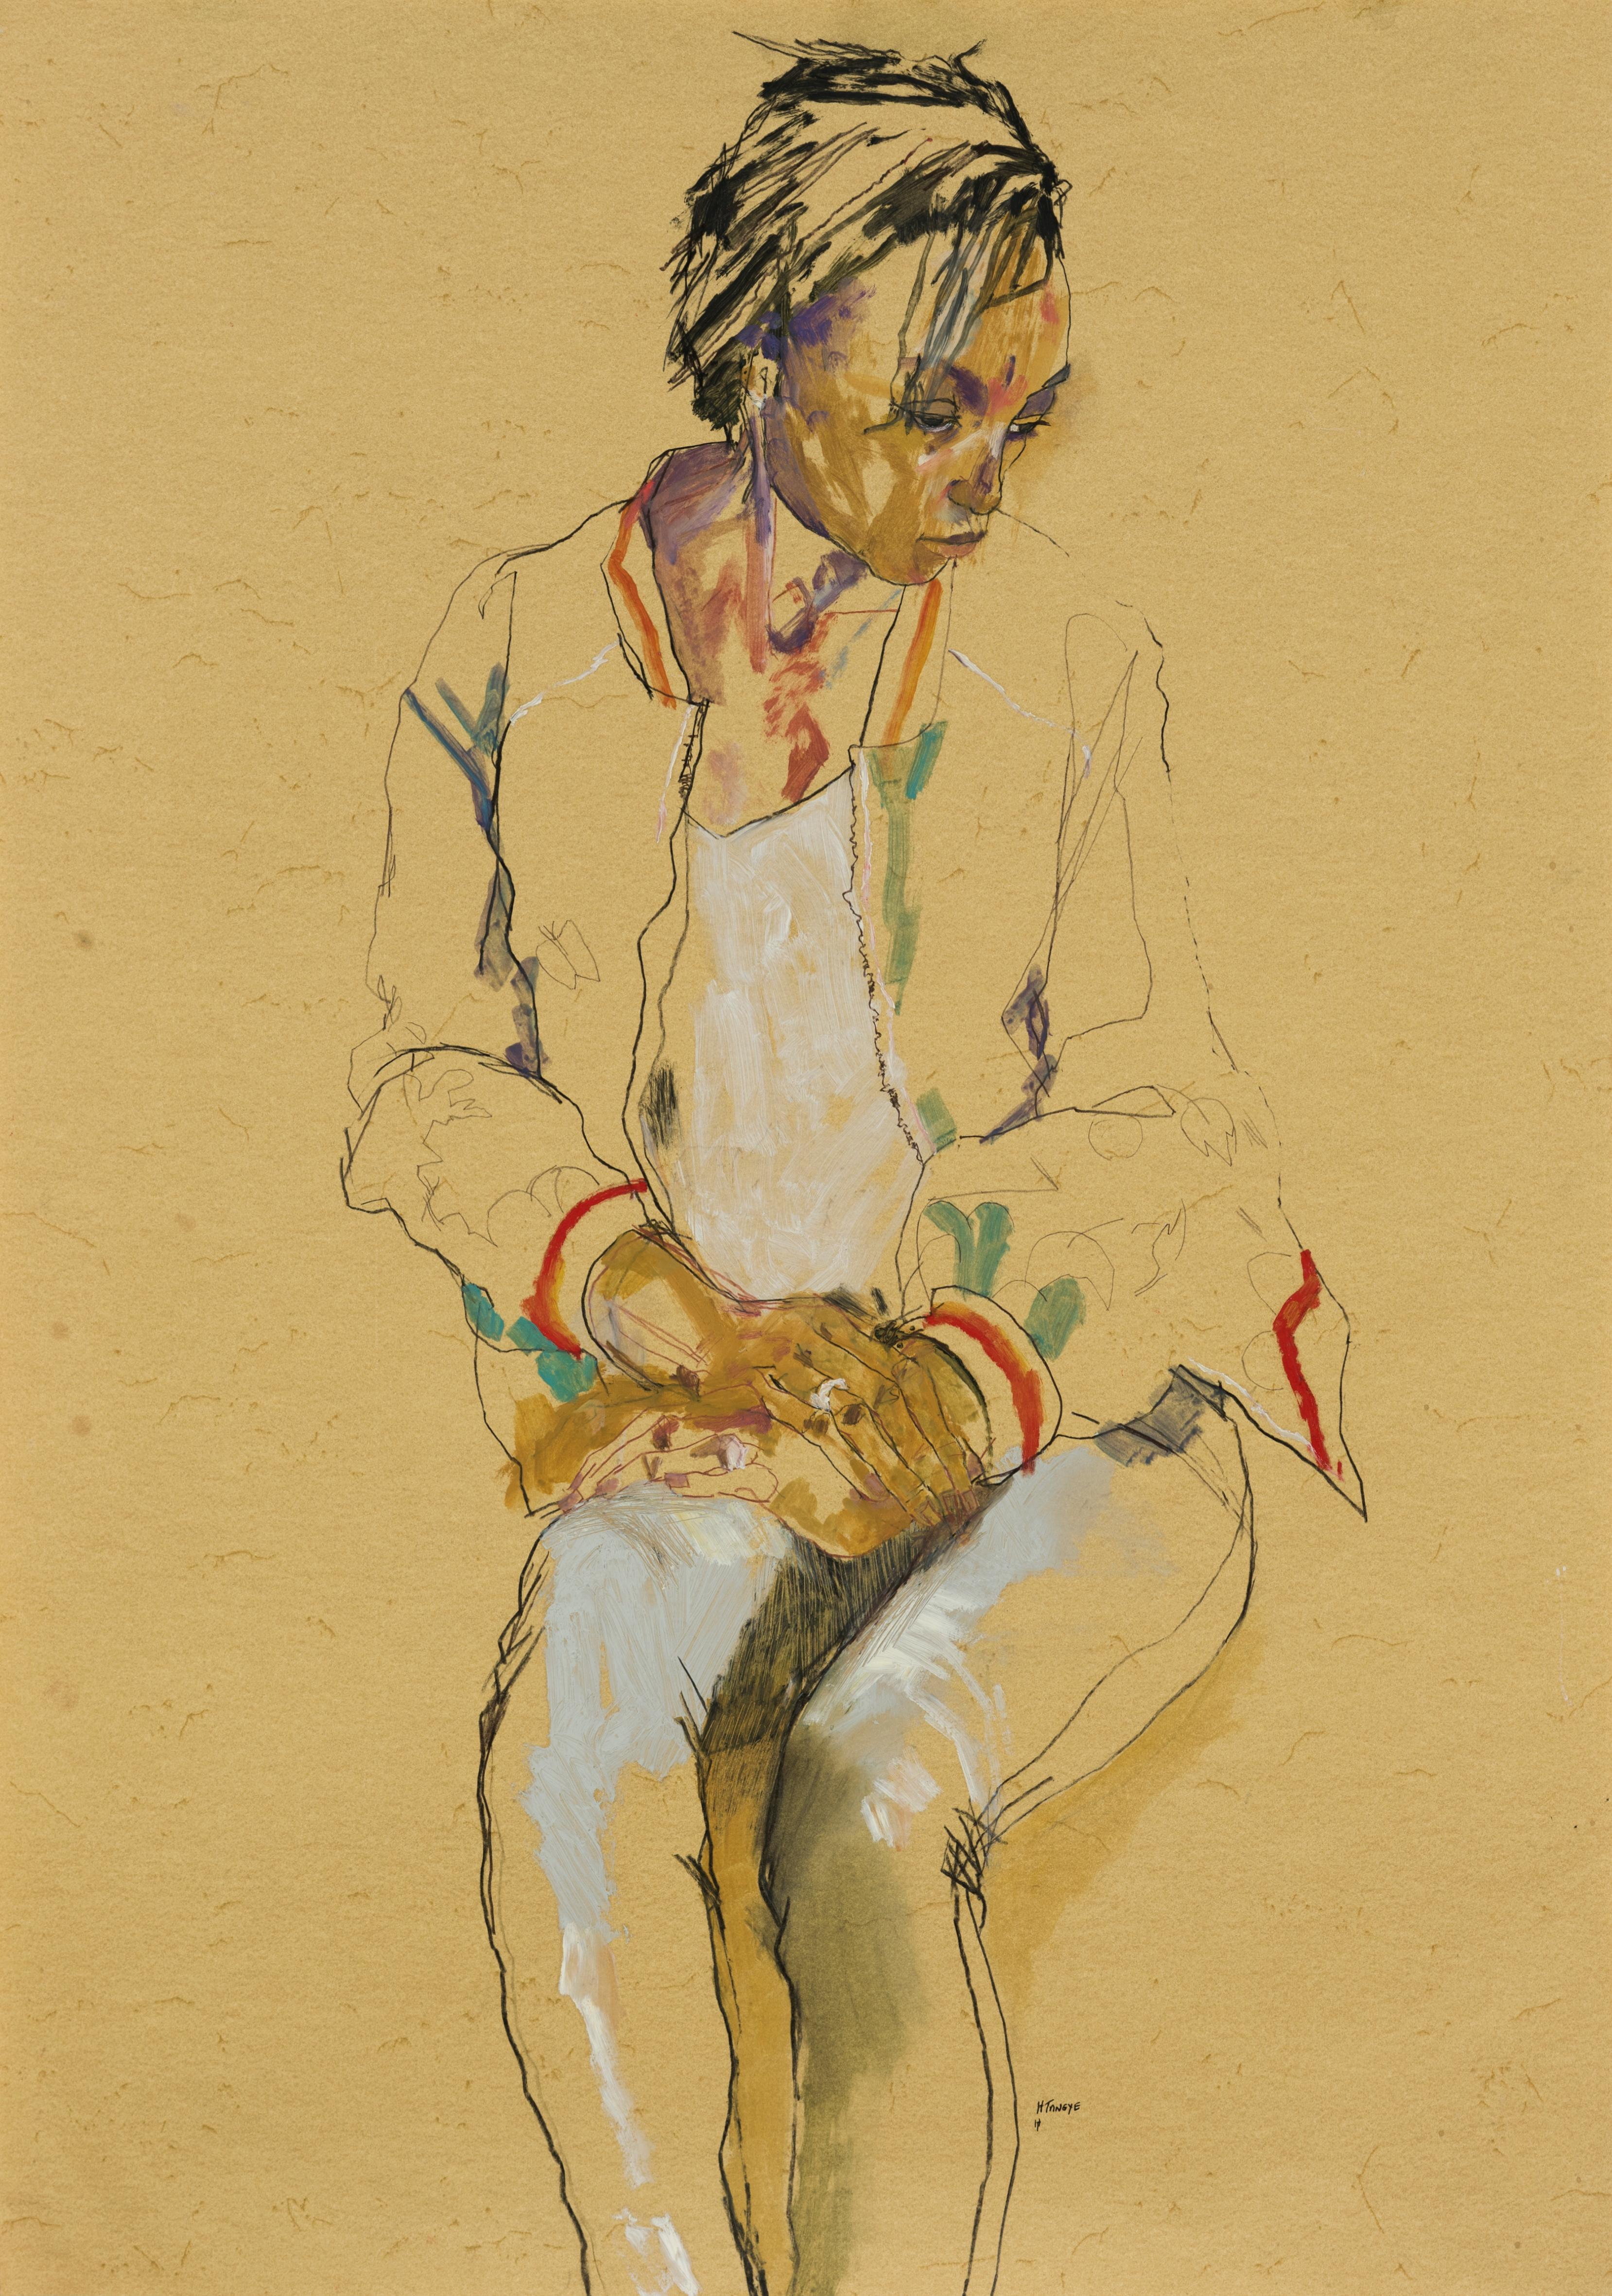 Anji (Seated, Hands in Lap, Looking Away), Mixed media on ochre paper